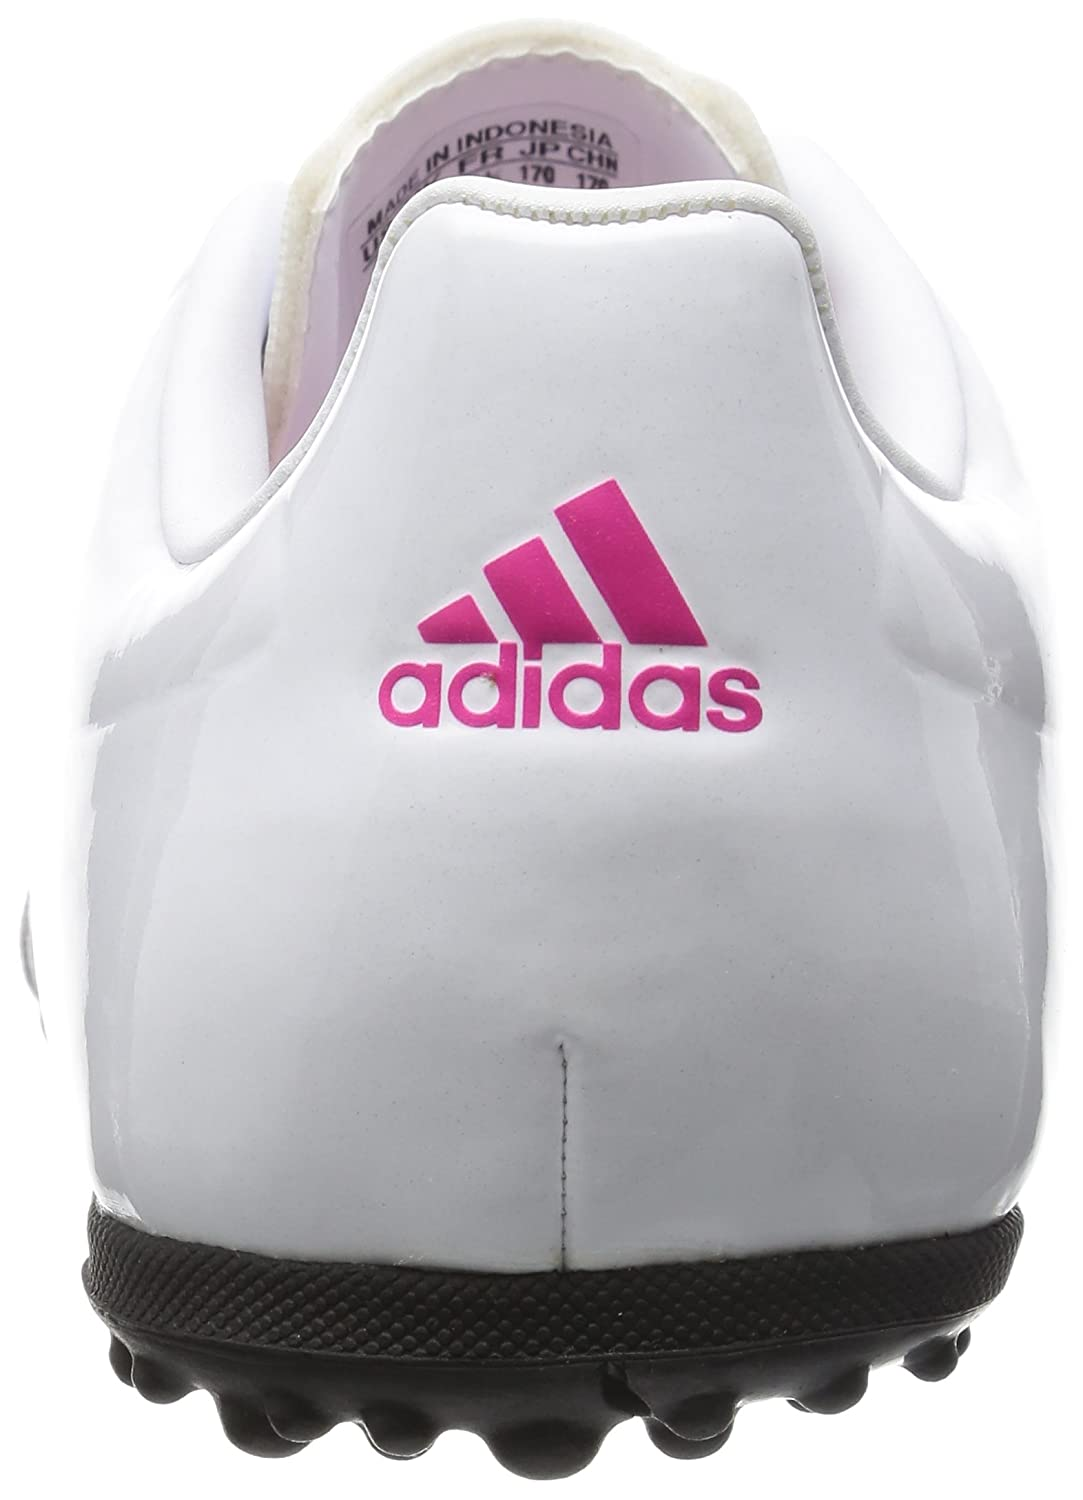 6aa5ddd1056f adidas Ace 15.3 Tf, Unisex Kids' Football Boots: Amazon.co.uk: Shoes & Bags